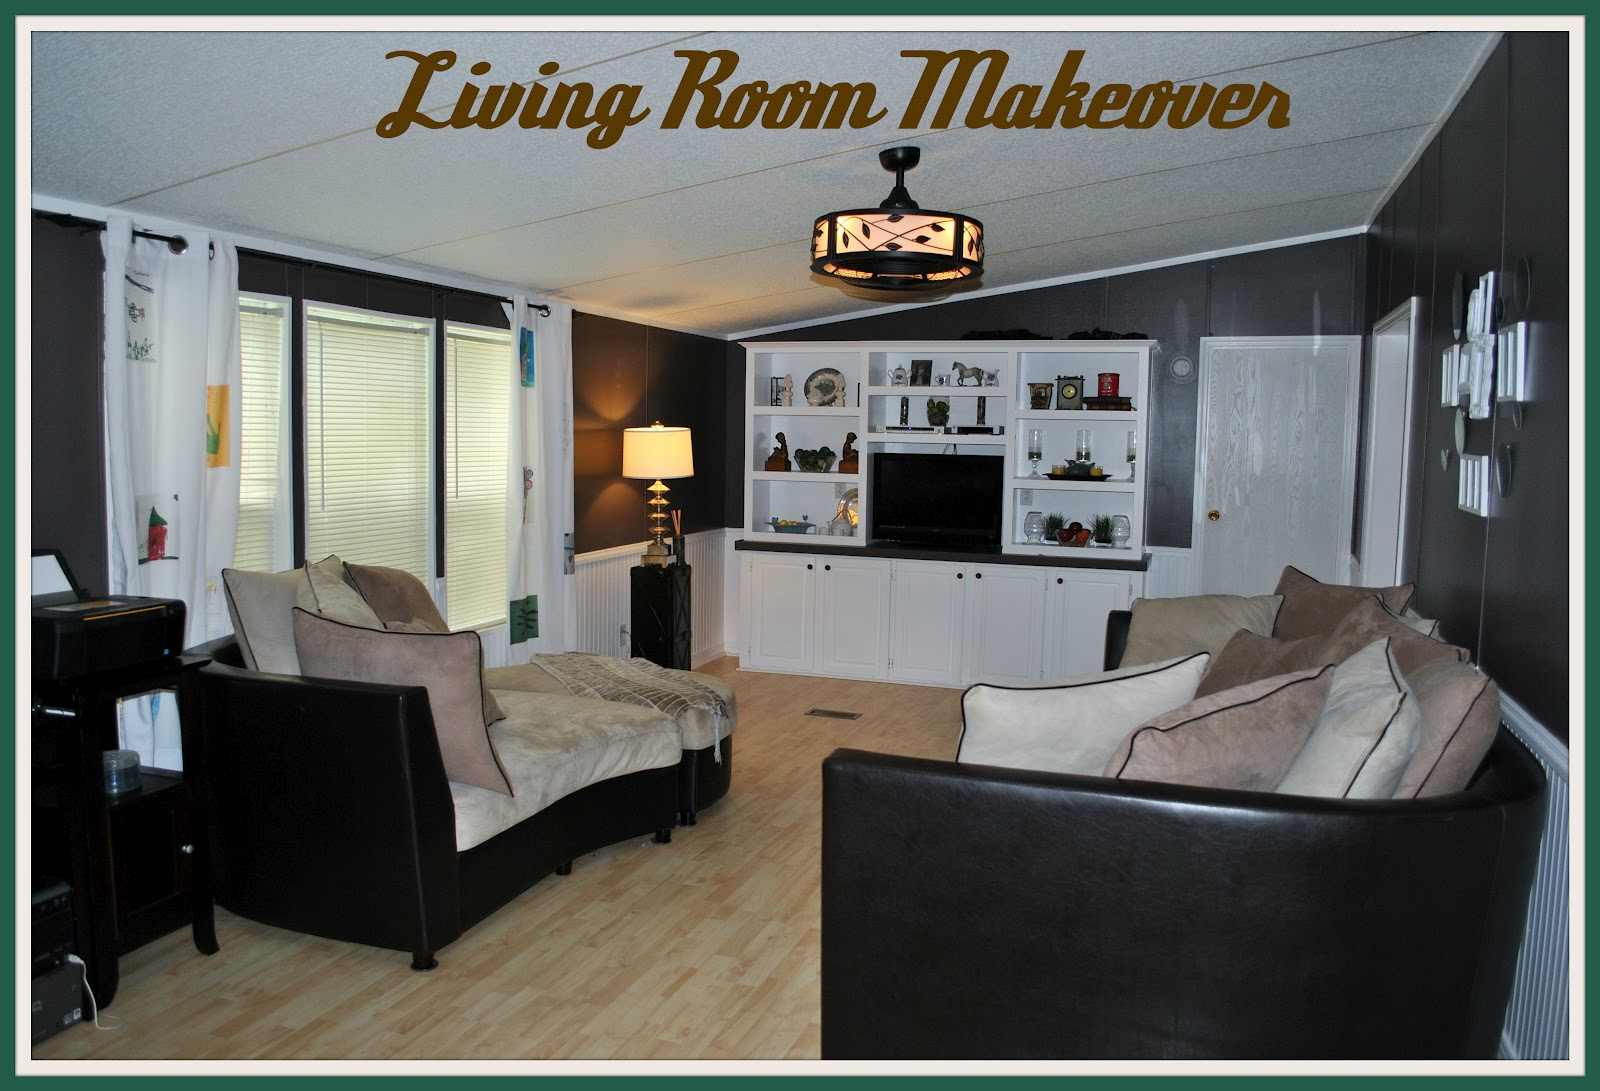 Life with 4 boys living room makeover before and after for Room makeover